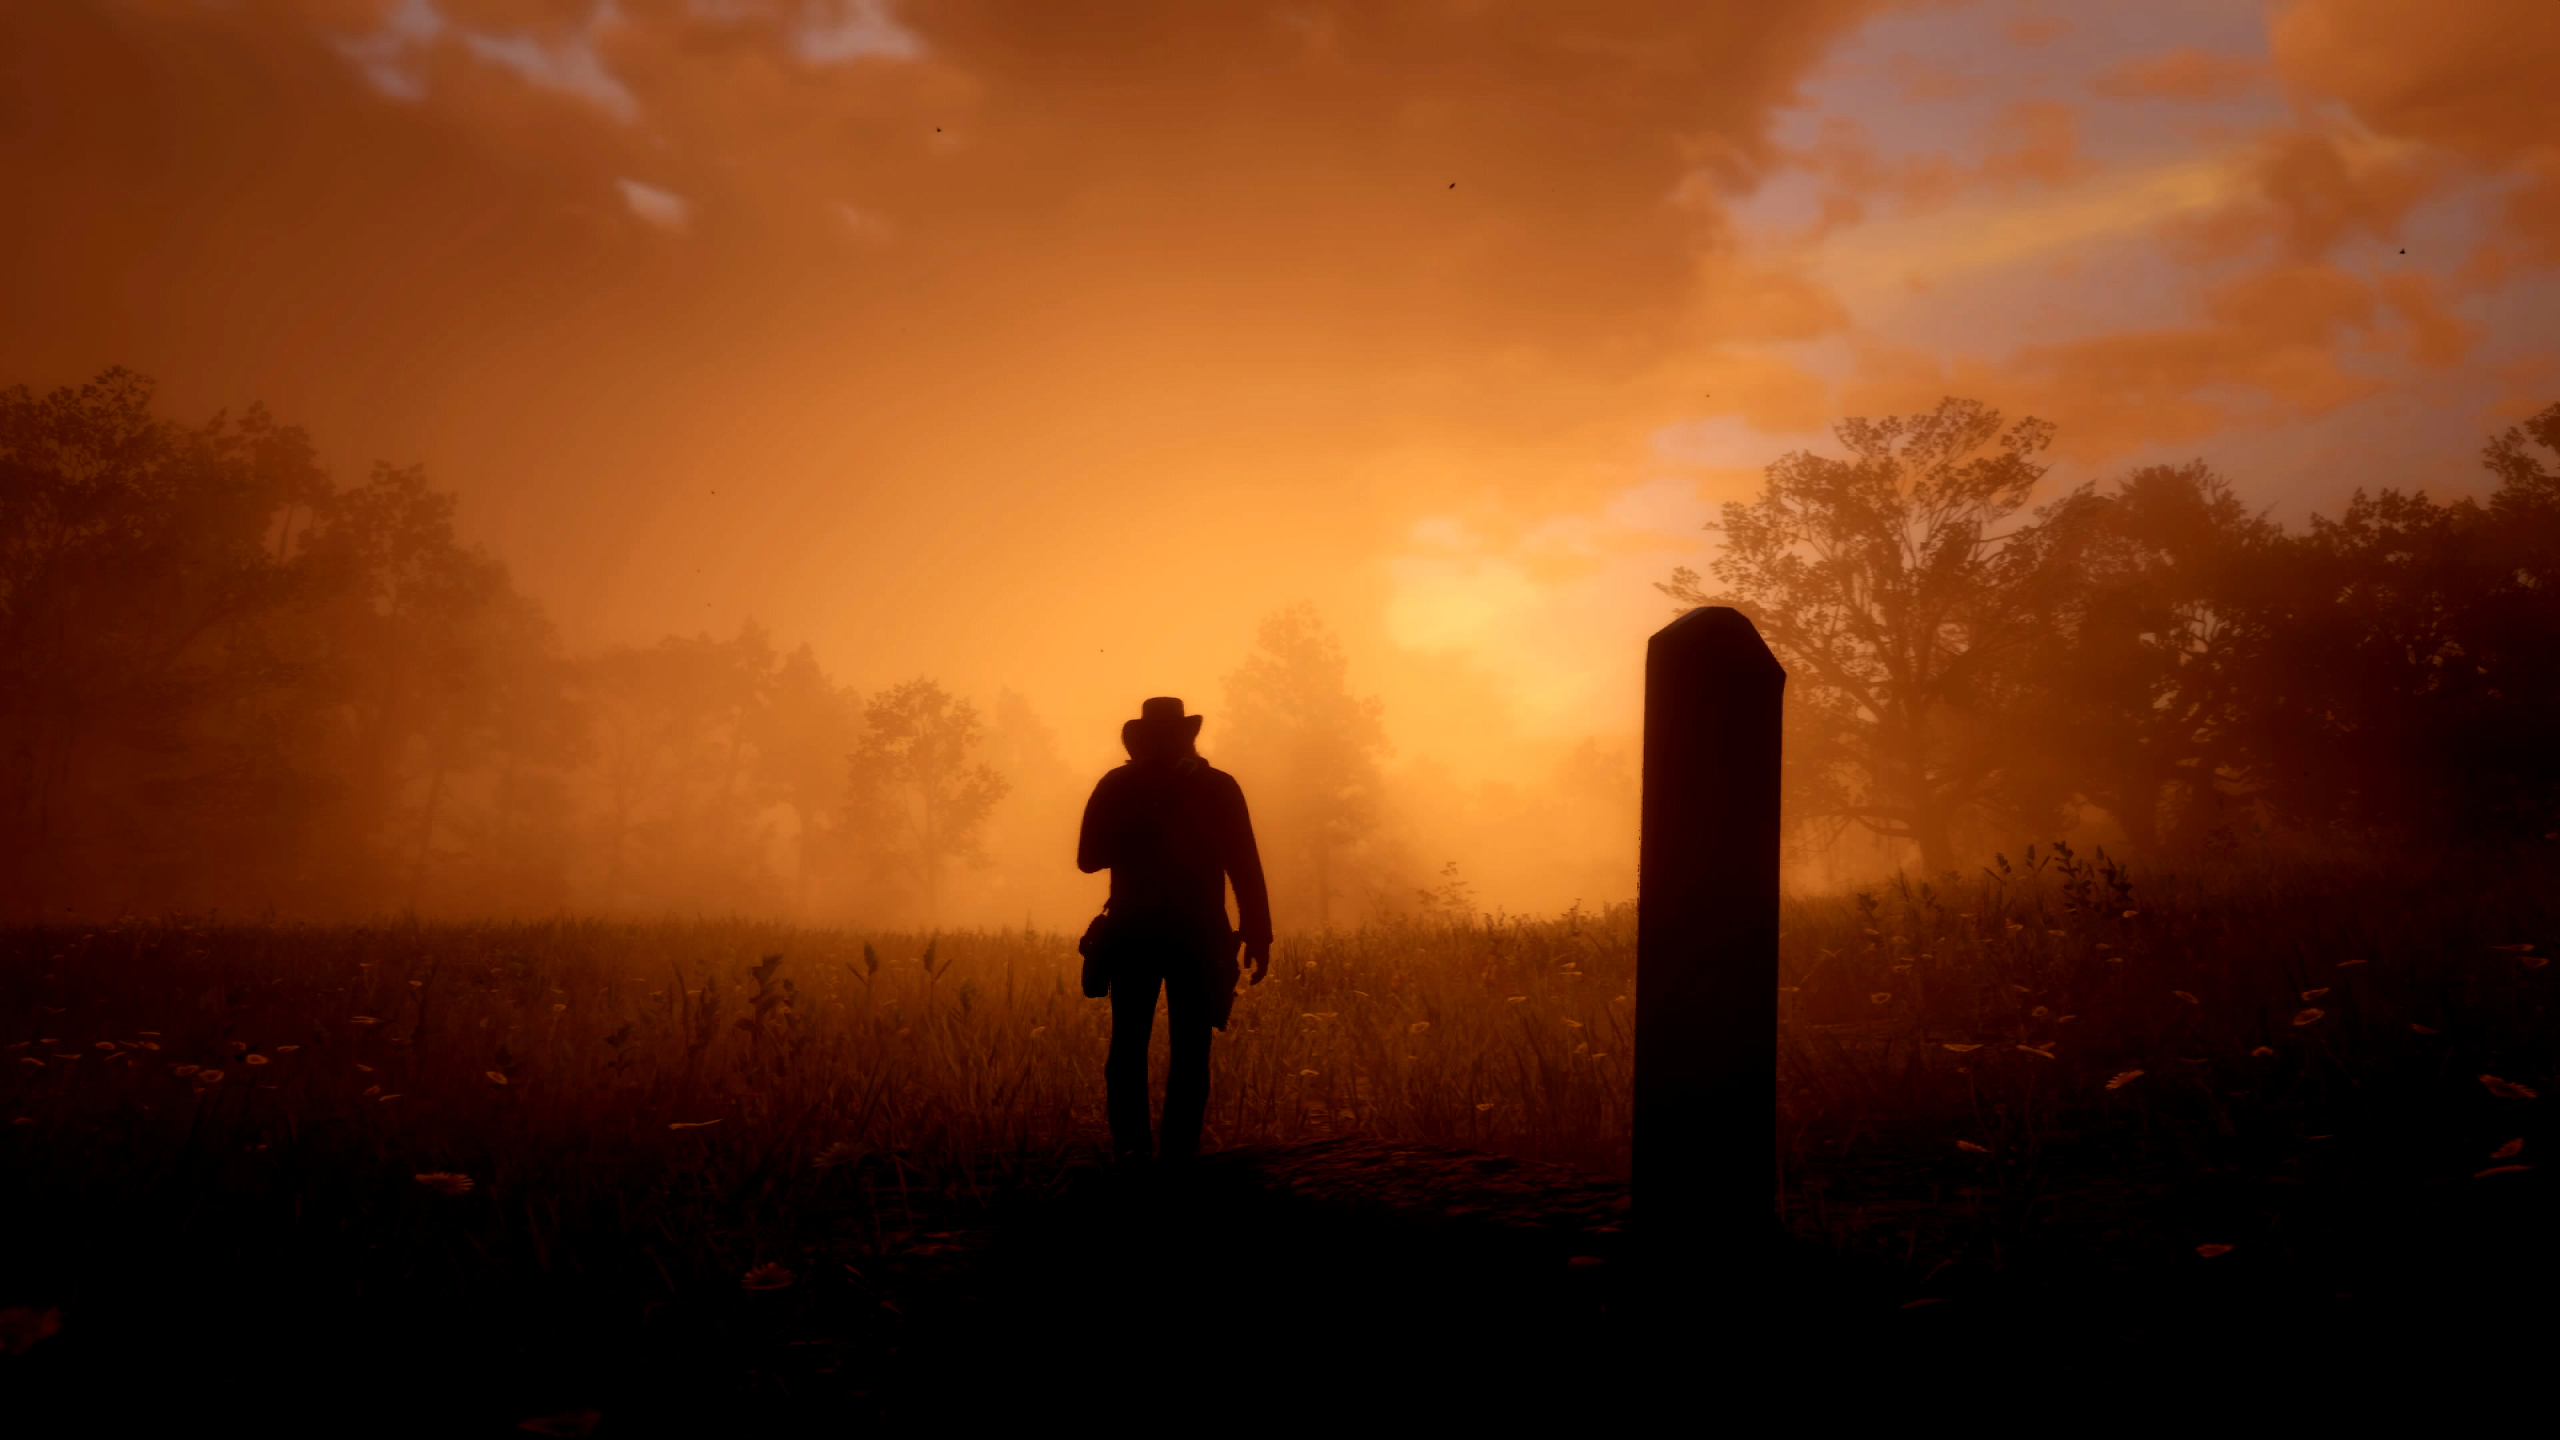 game red dead redemption 2 a2hqbWaUmZqaraWkpJRnamtlrWZpaWU